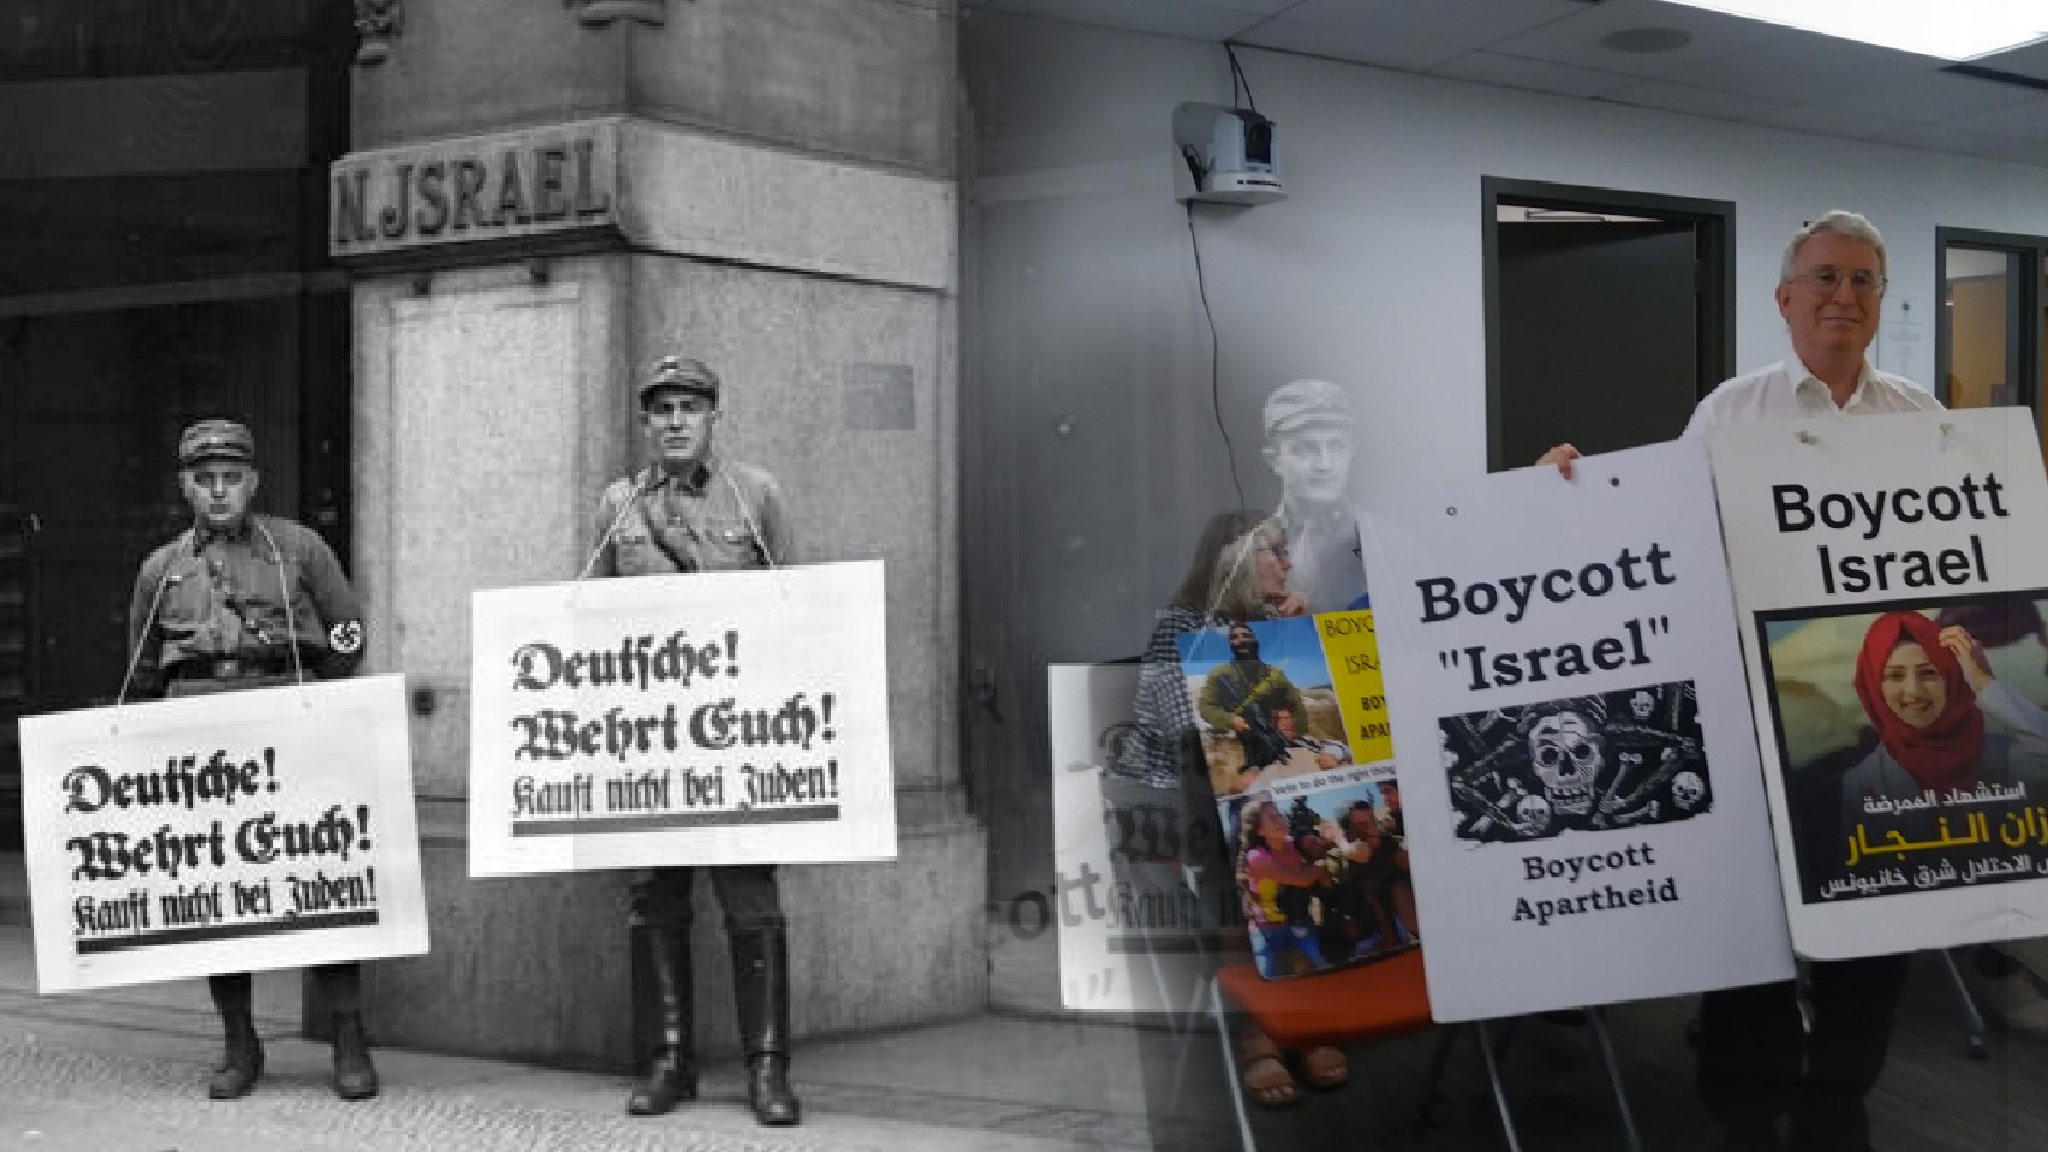 Anti-Israel sentiment in NZ Unions spills over into antisemitism and calls for murder of Jews